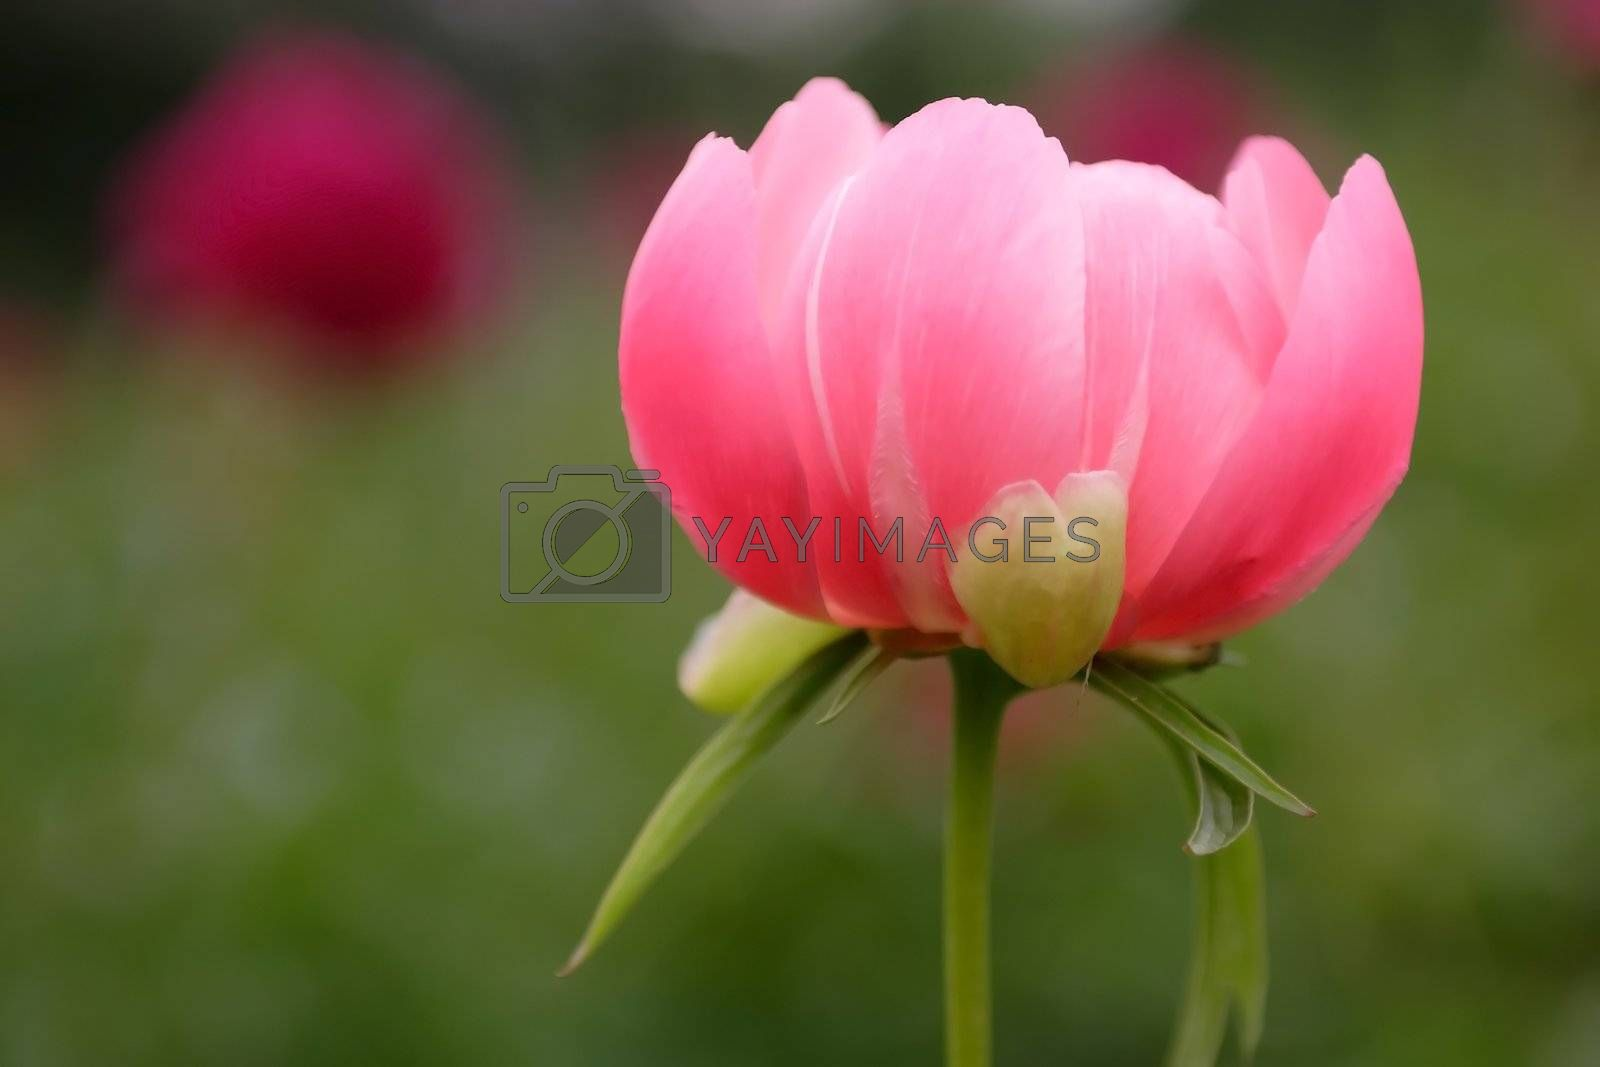 Royalty free image of Flowers, Peony by Astroid